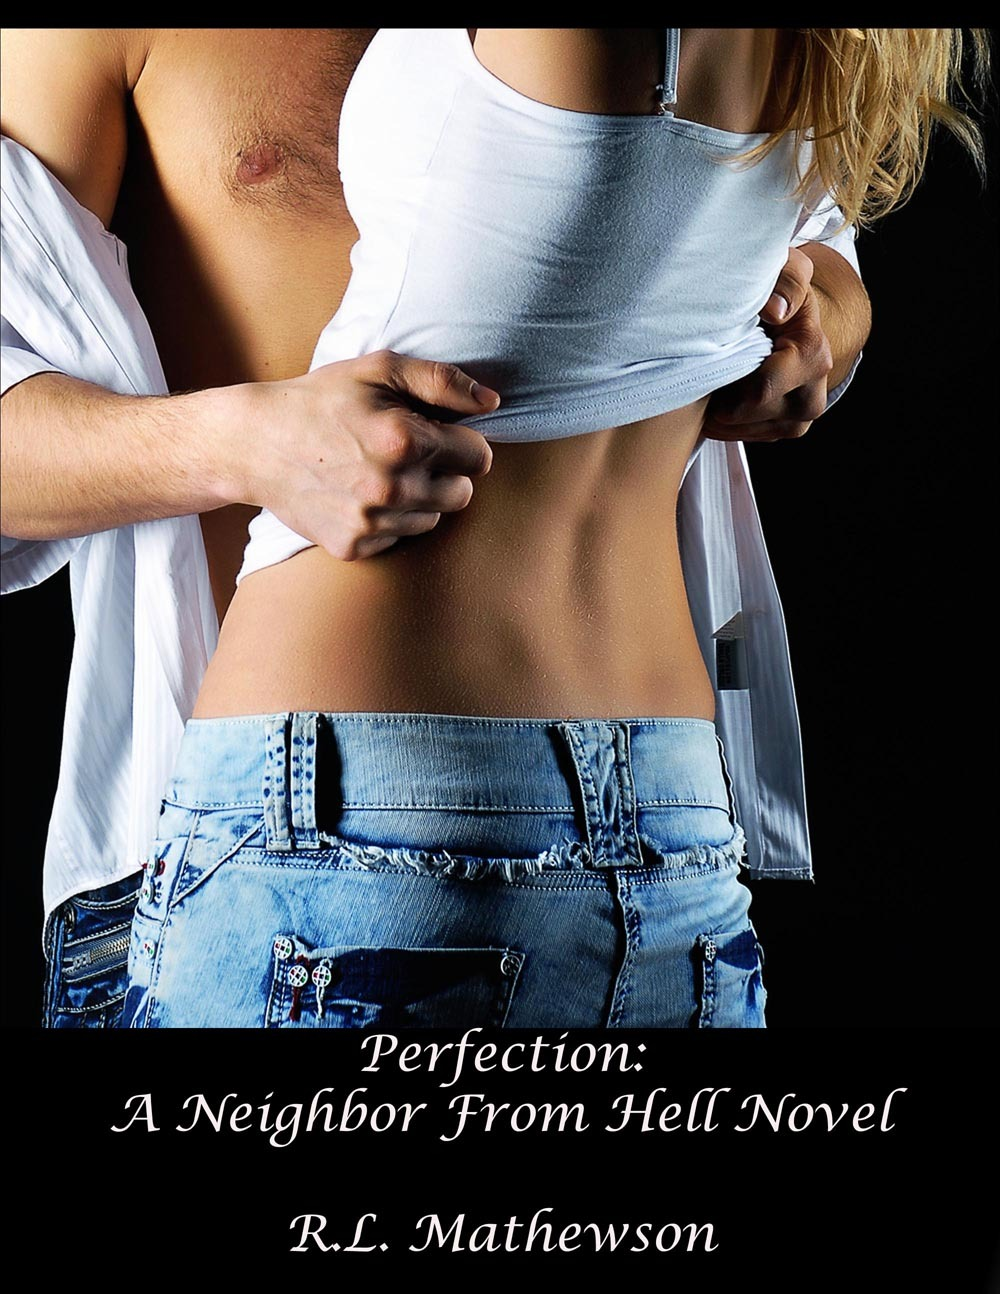 Perfection: A Neighbor From Hell Novel By: R.L. Mathewson